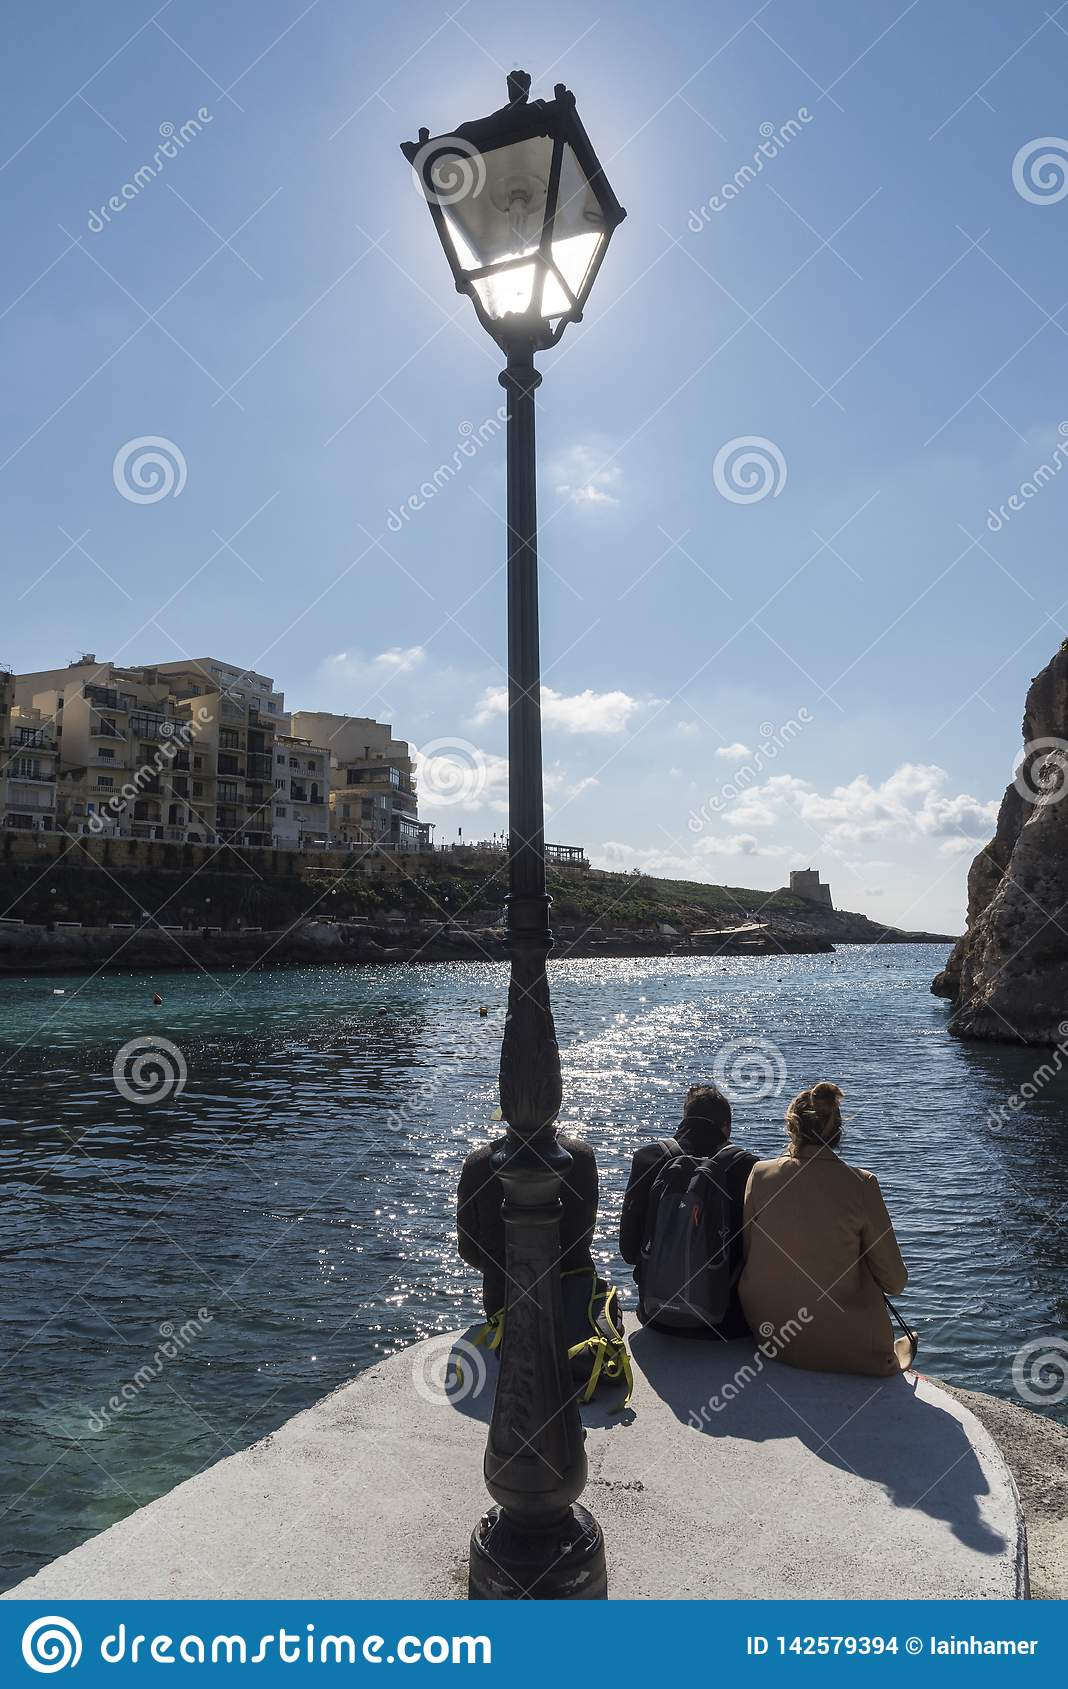 Sun Worship and lamp post on the jetty in Xlendi